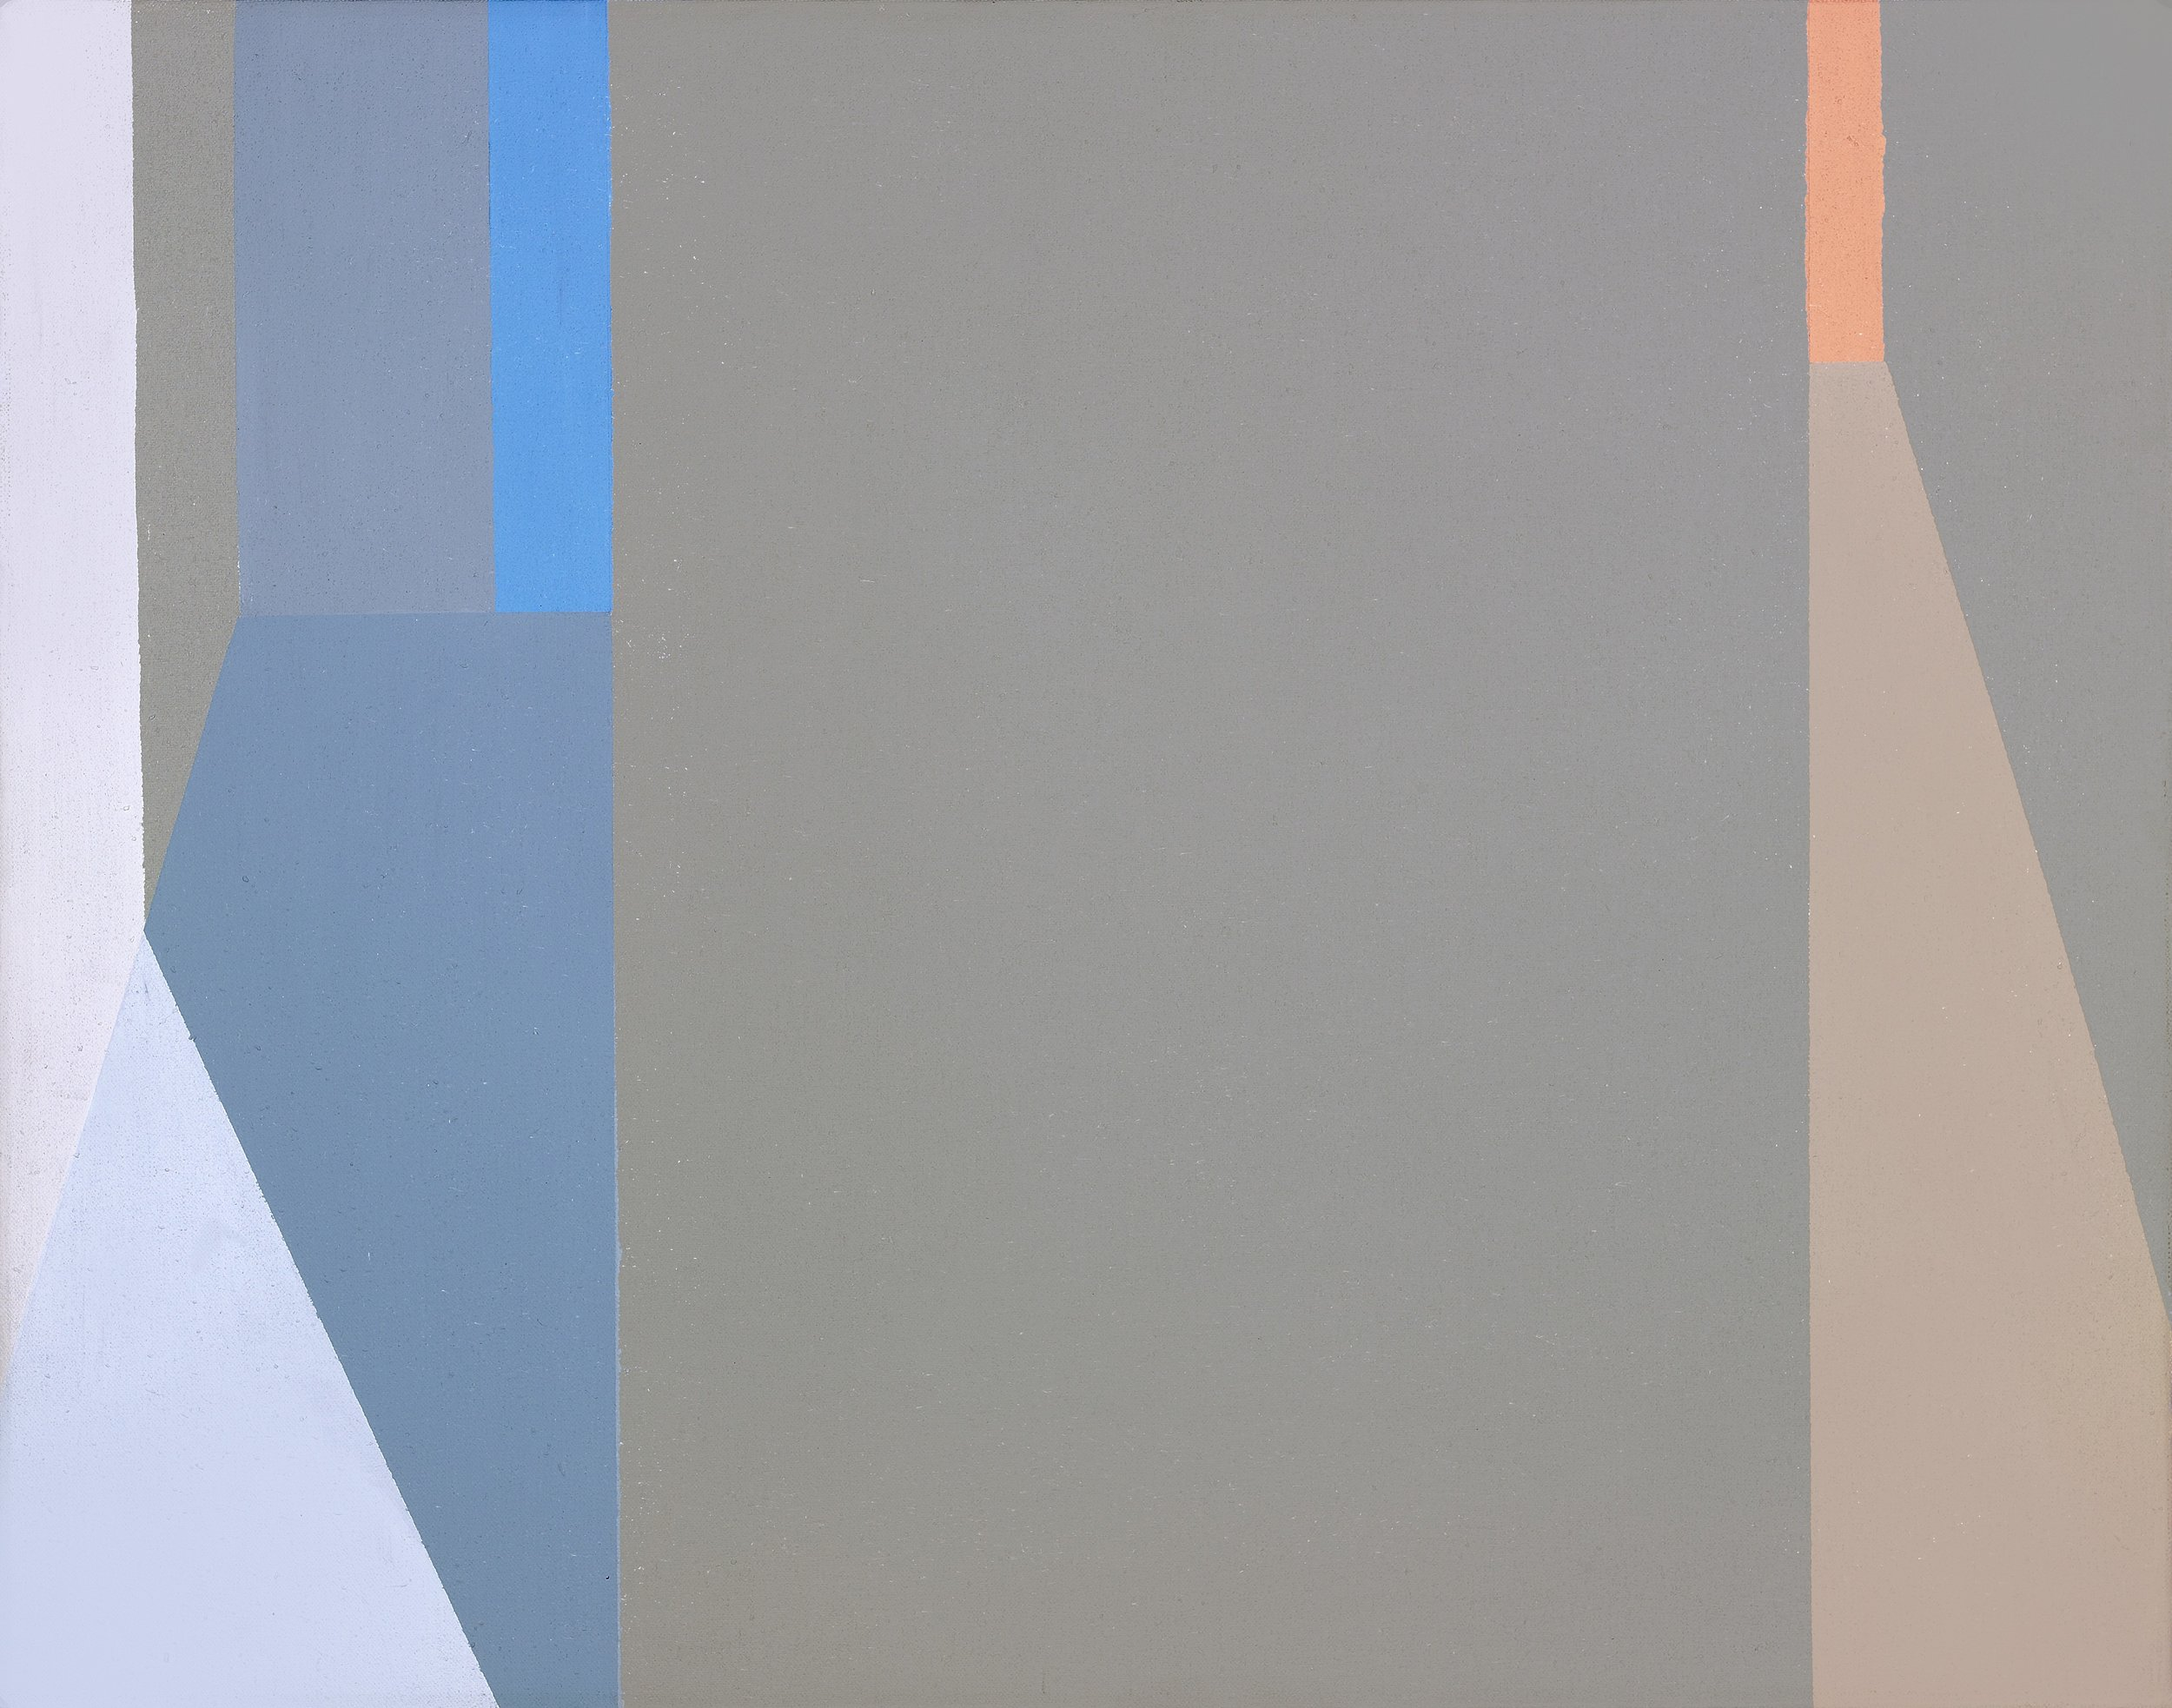 Untitled (Evening Lights and Shadows) , 1975  acrylic on canvas 14 x 18 inches; 35.6 x 45.7 centimeters  $25,000